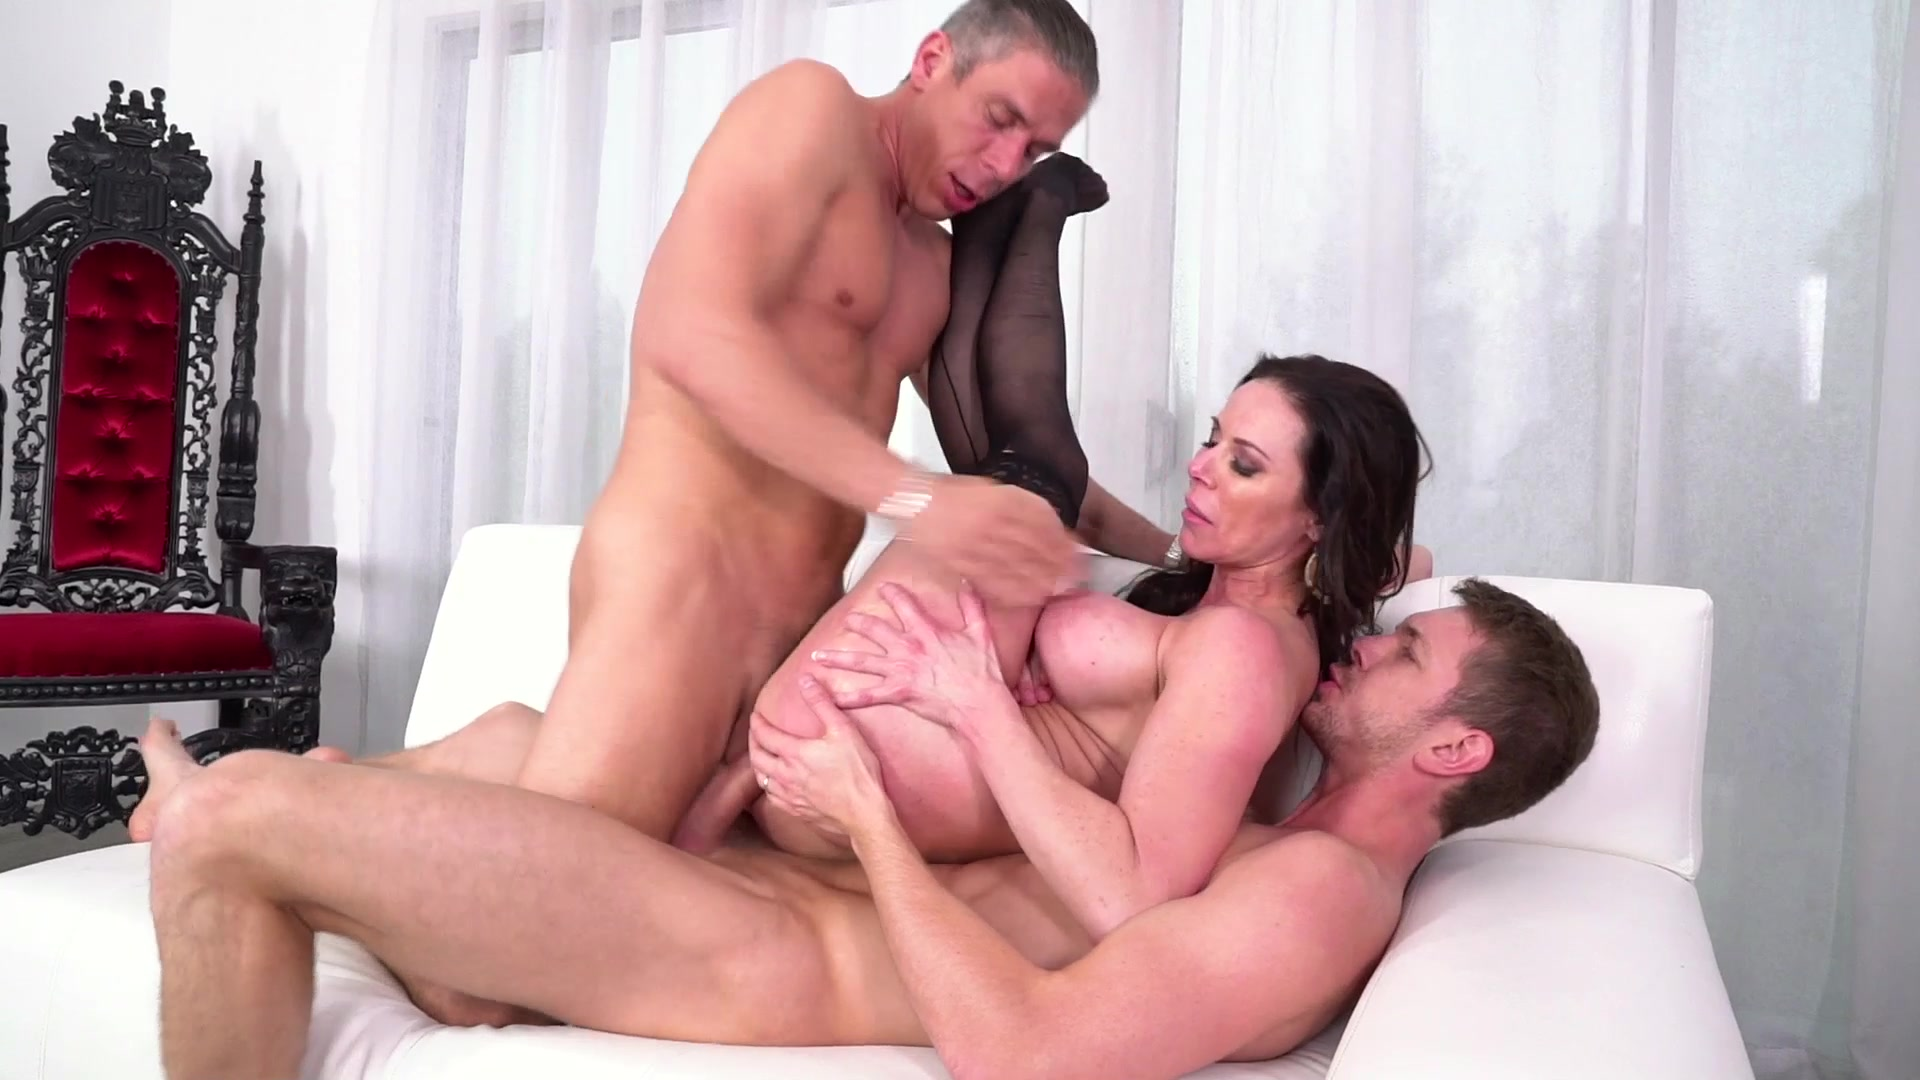 Hot brunette milf gets double penetration